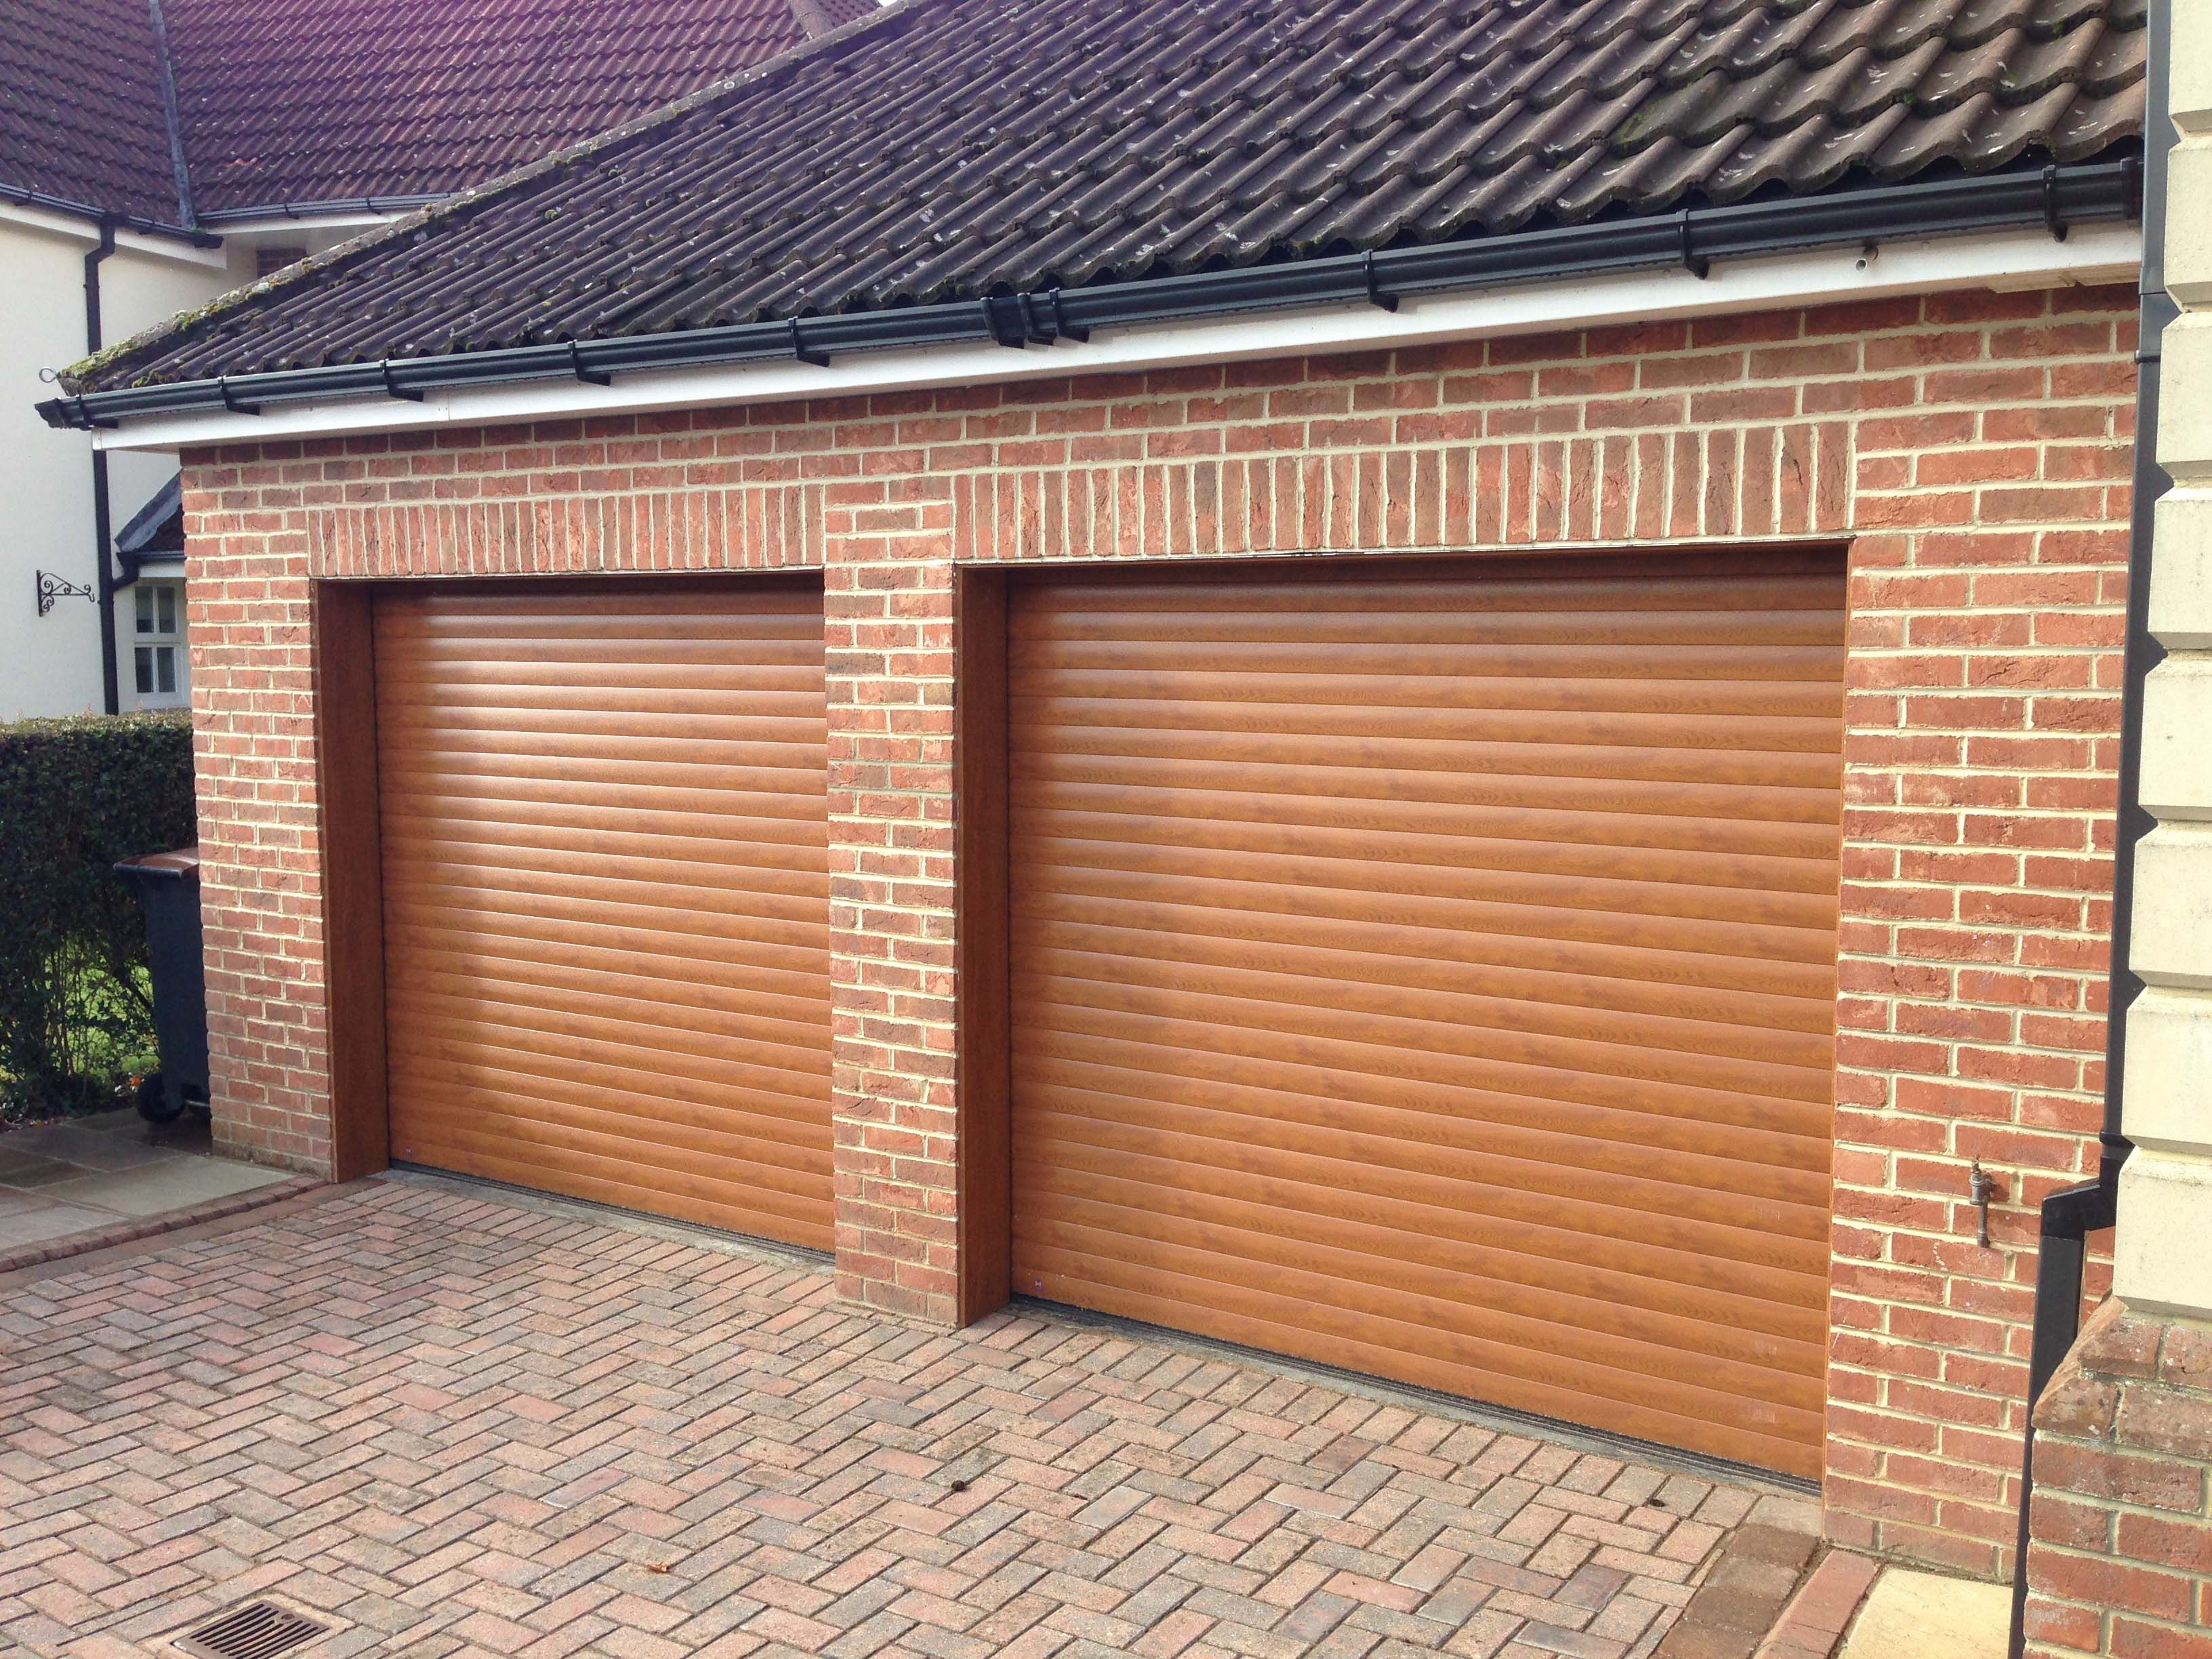 Seceuroglide insulated sectional garage door georgian cassette - Rollmatic Made To Measure Insulated Roller Door In Golden Oak